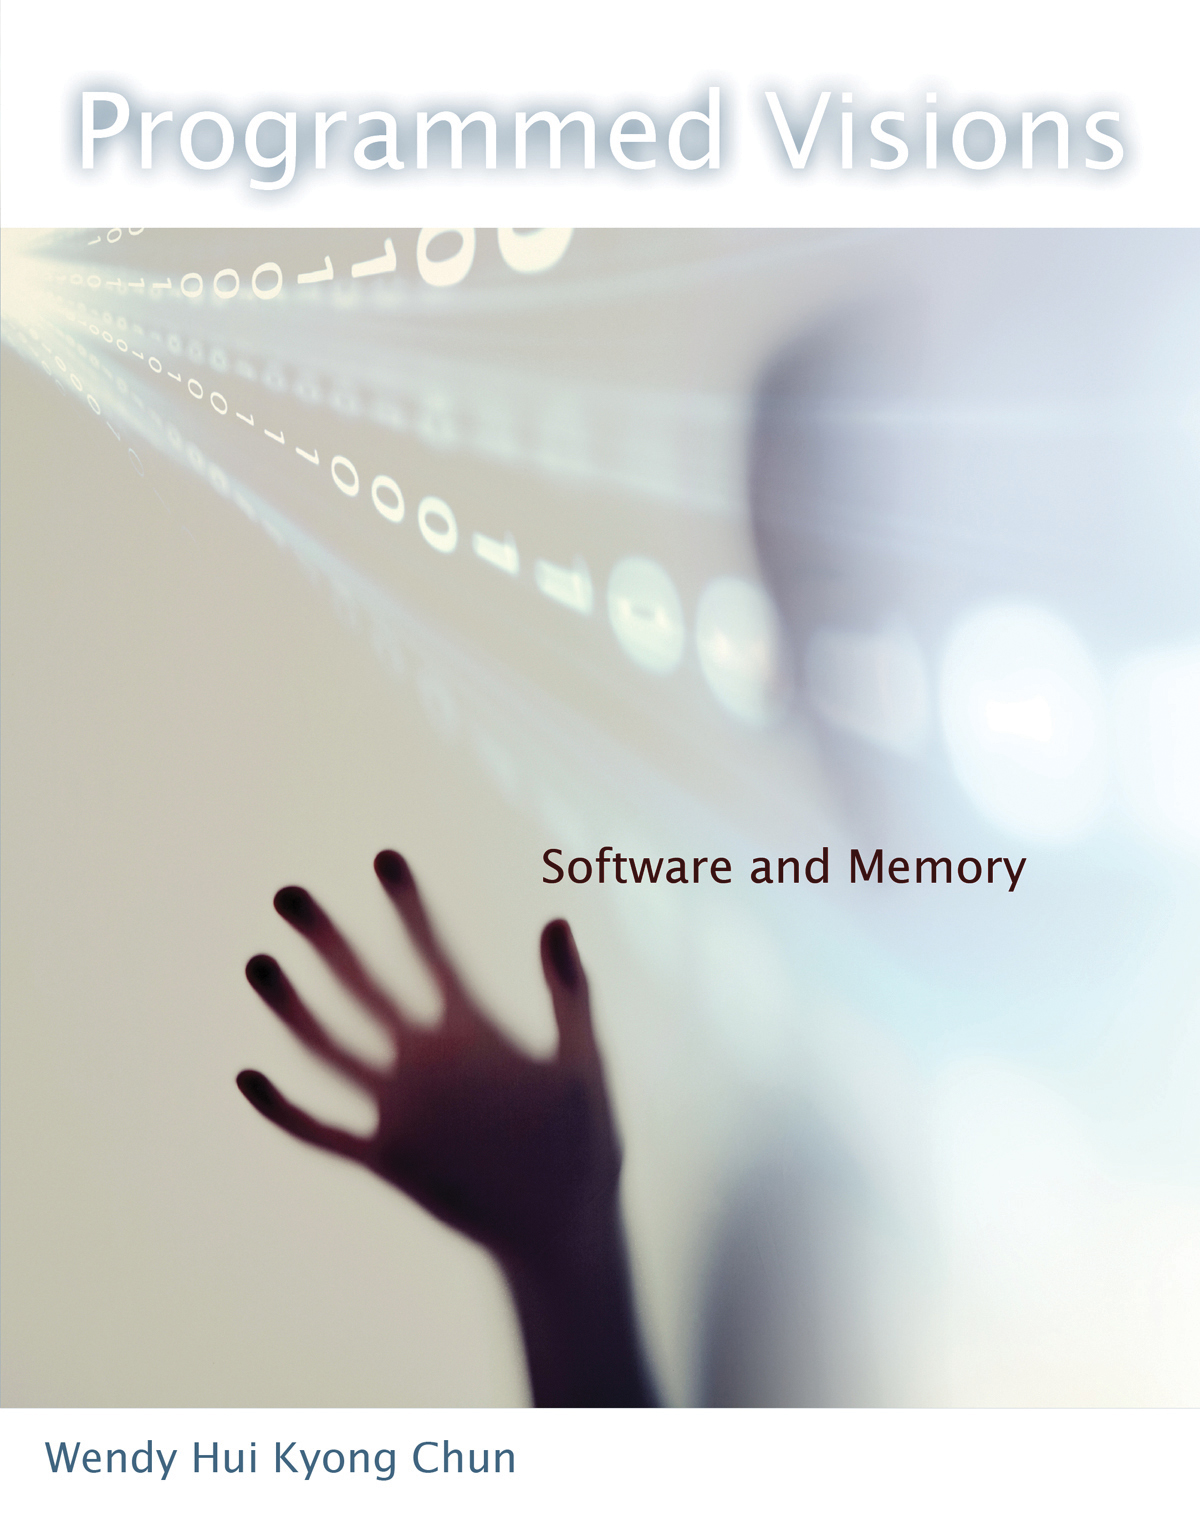 """Wendy Hui Kyong Chun, Programmed Visions: Software and Memory"" co-authored with Lisa Gitelman"